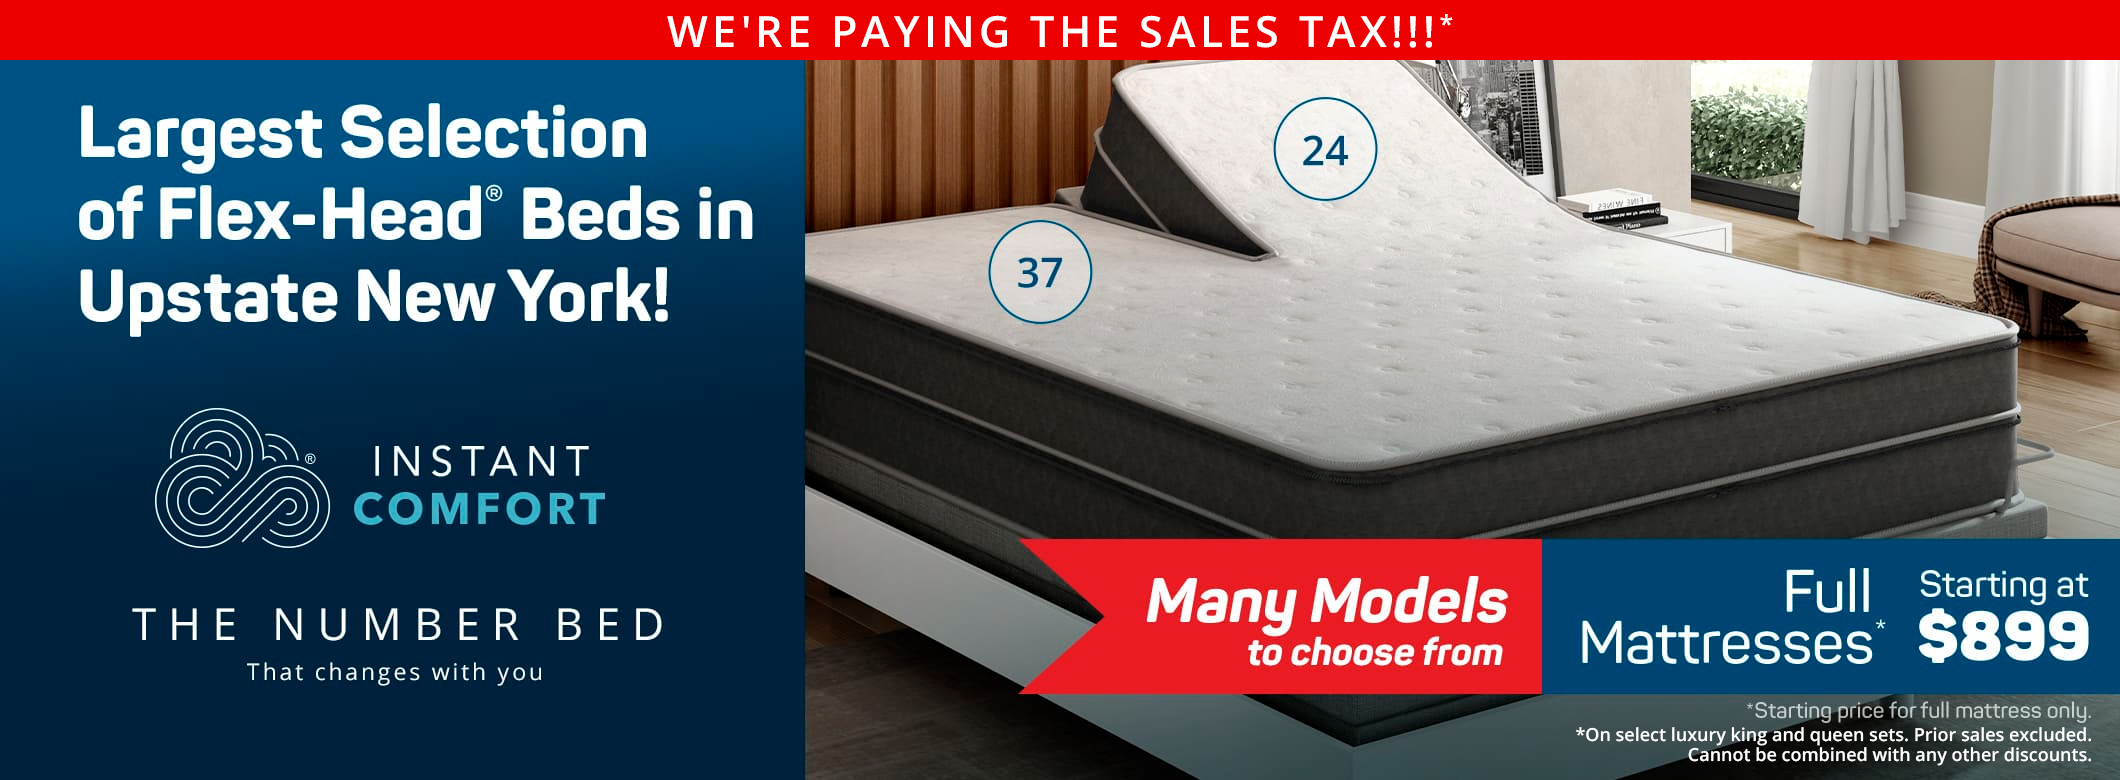 Largest Selection of Flex head beds in Upstate NY